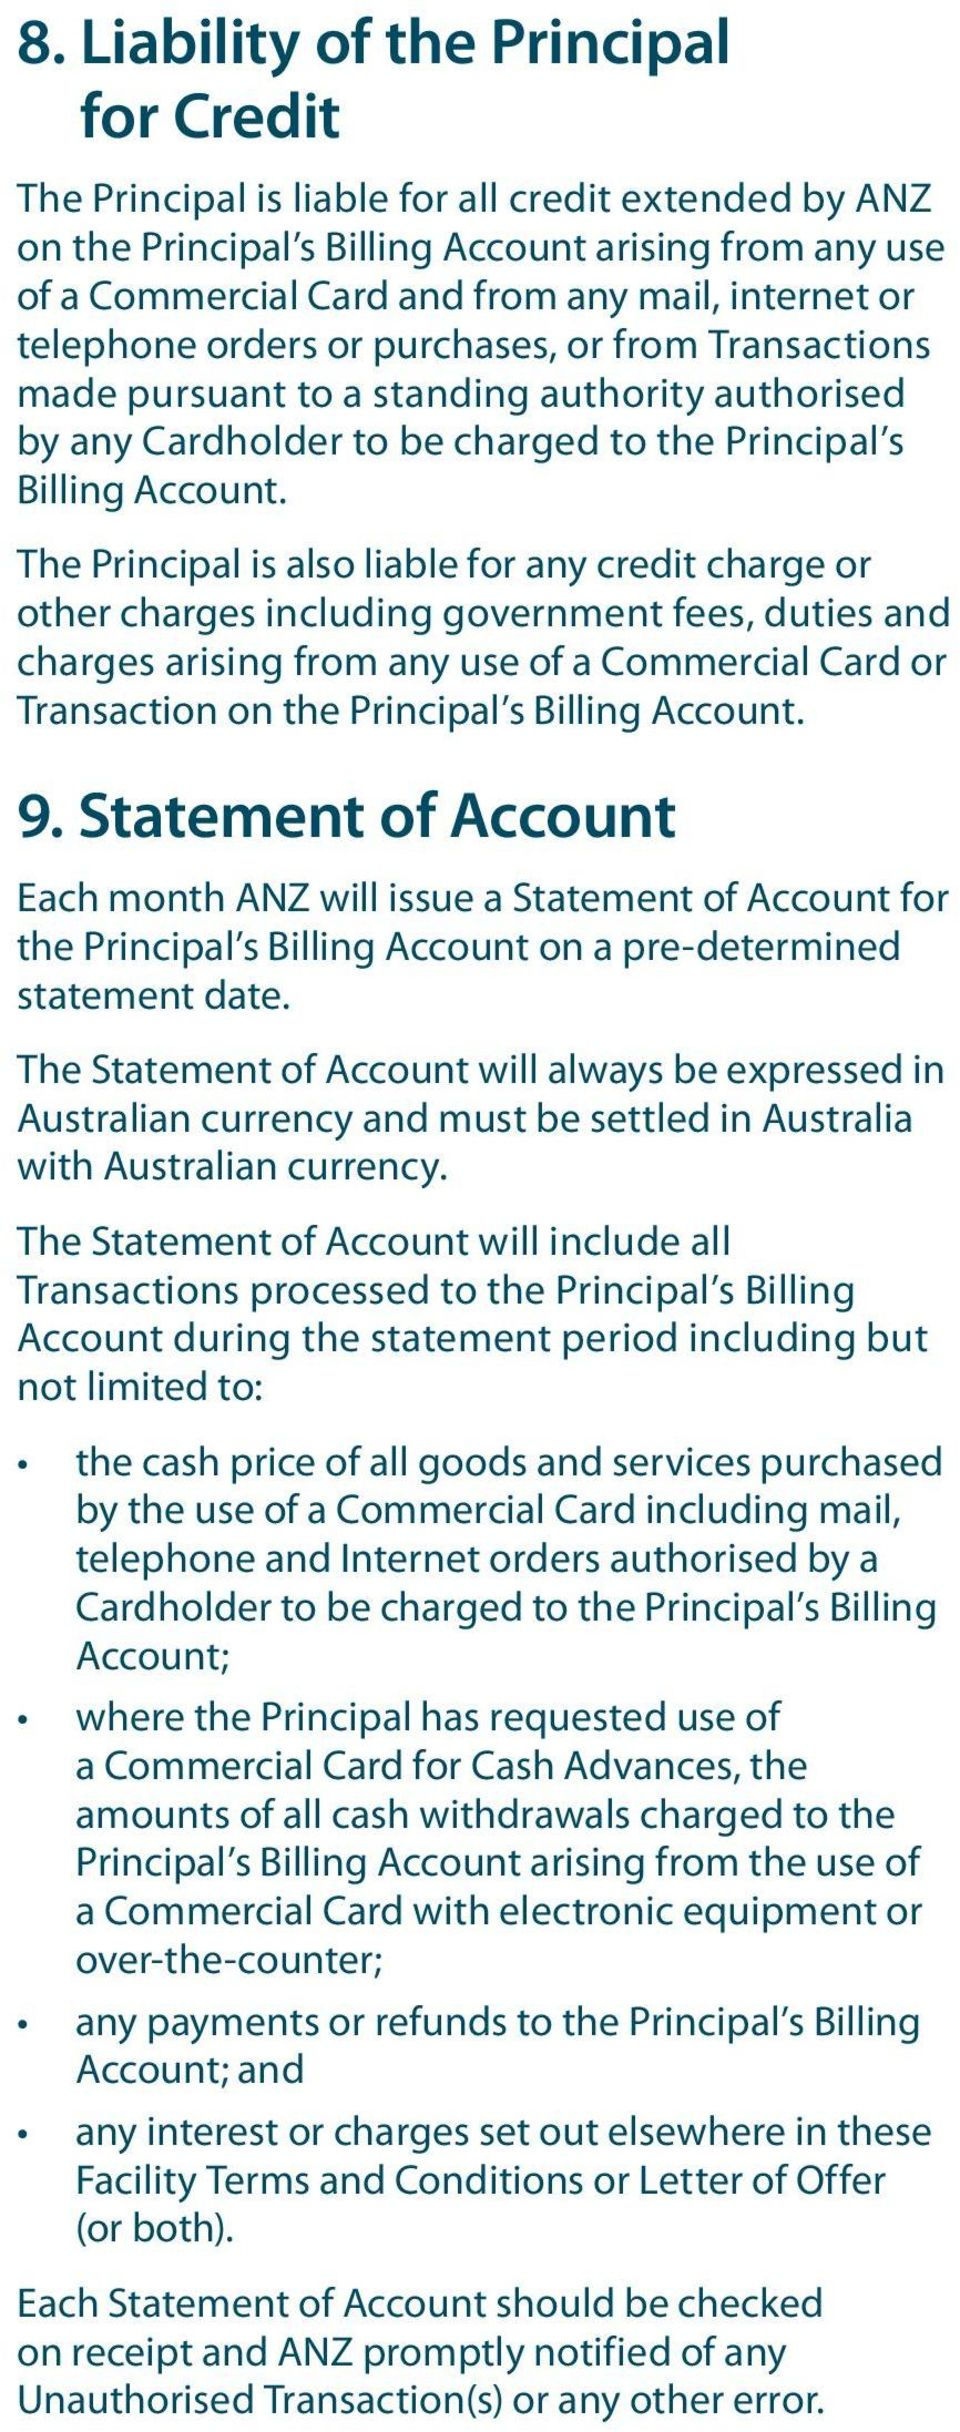 The Principal is also liable for any credit charge or other charges including government fees, duties and charges arising from any use of a Commercial Card or Transaction on the Principal s Billing